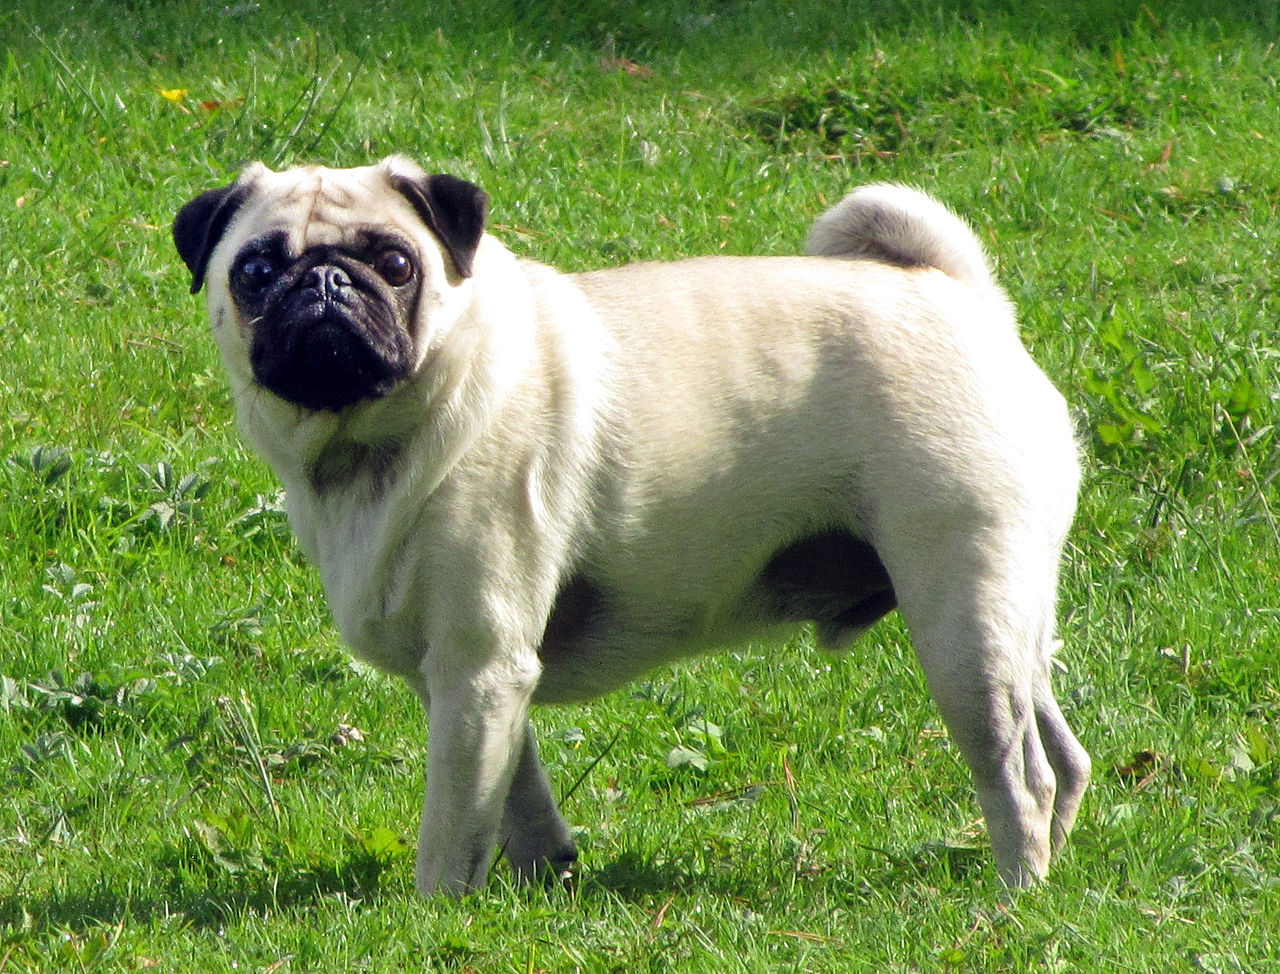 1280px-Fawn_pug_2.5year-old